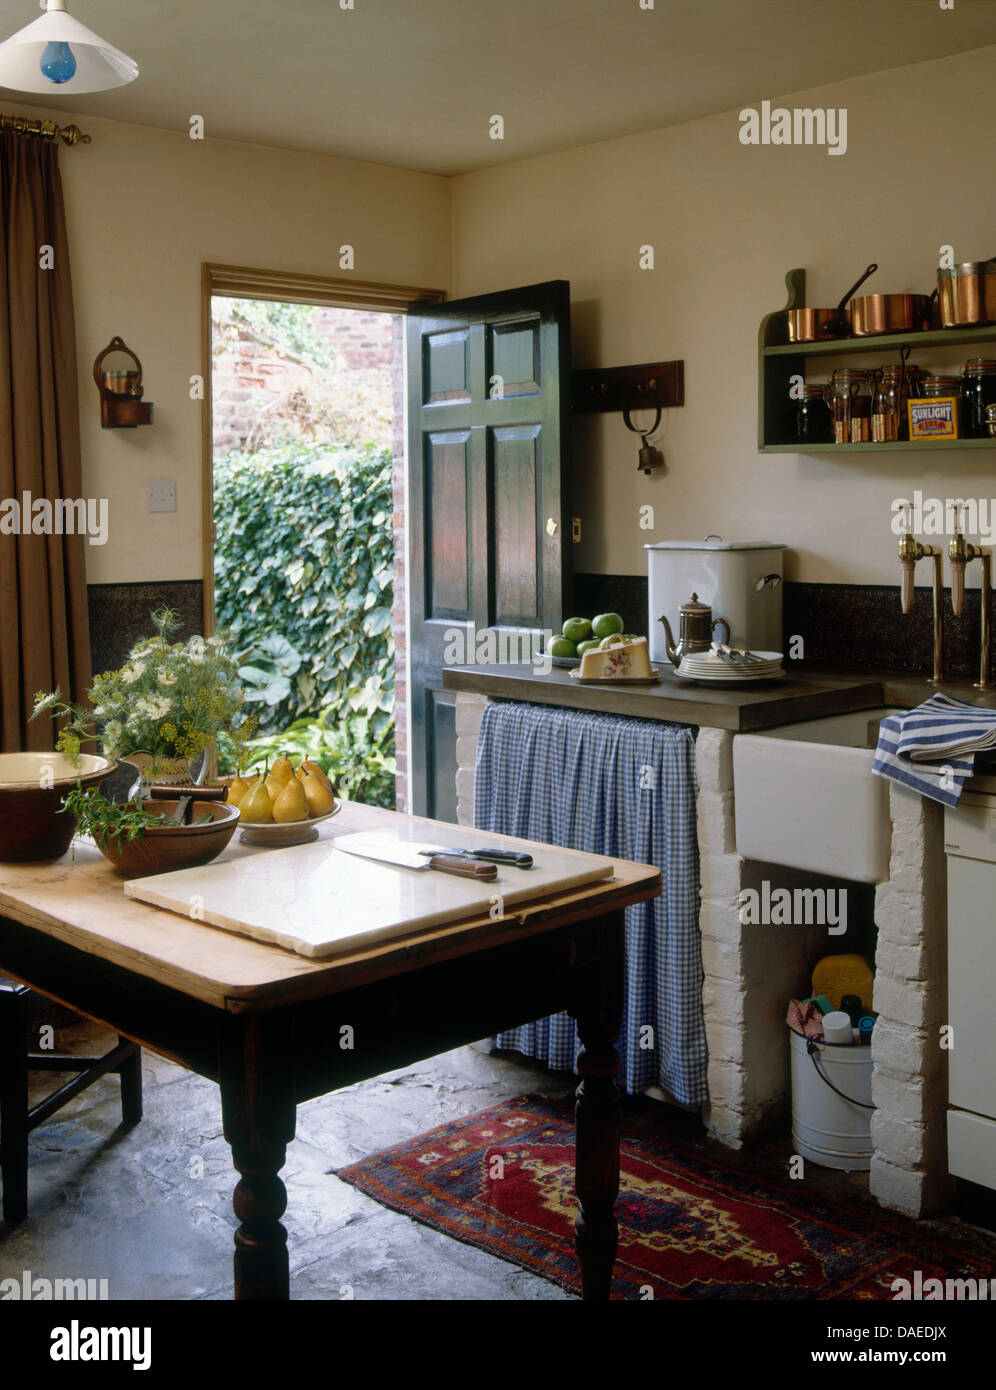 Wooden Table In Center Rustic Country Cottage Kitchen With Curtains Stock Photo Alamy